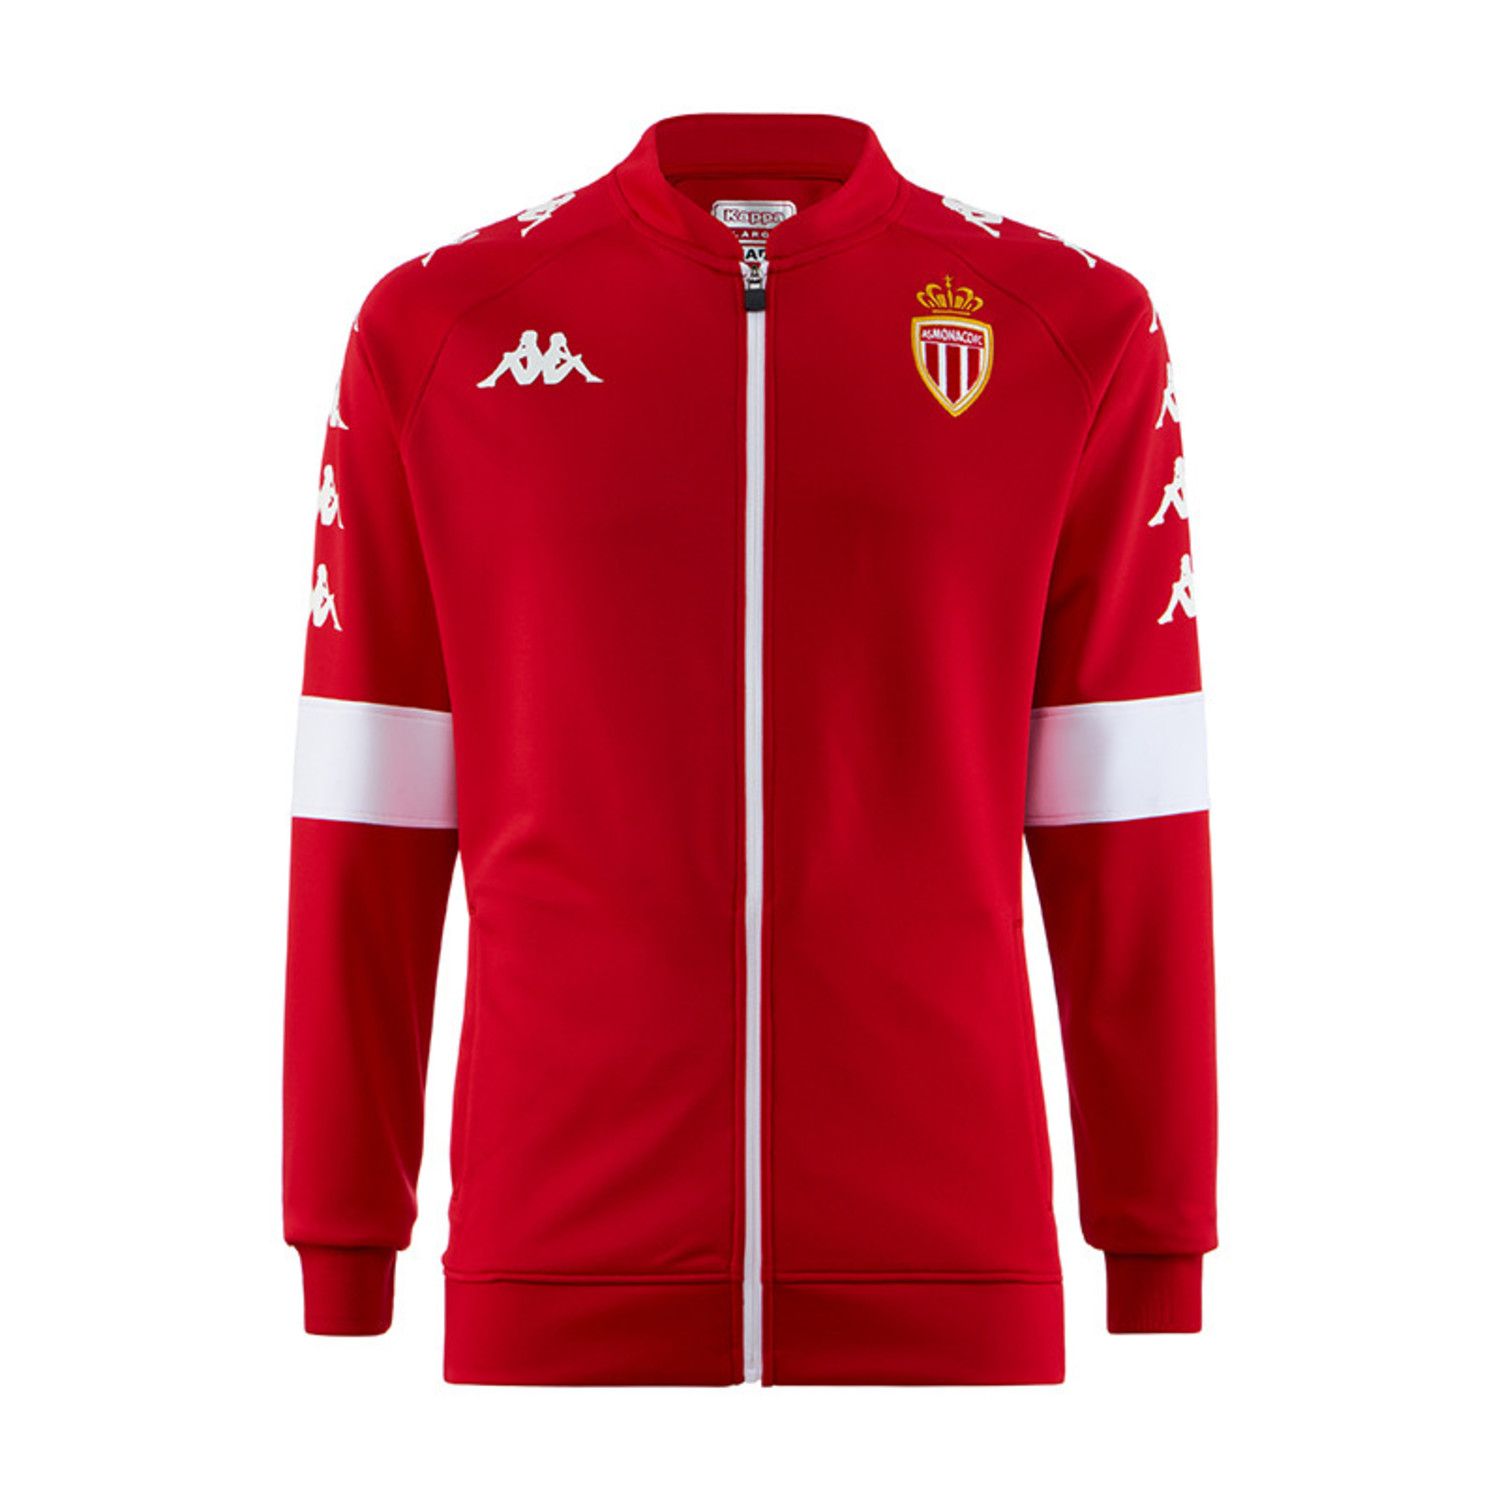 Veste survêtement AS Monaco rouge 201920